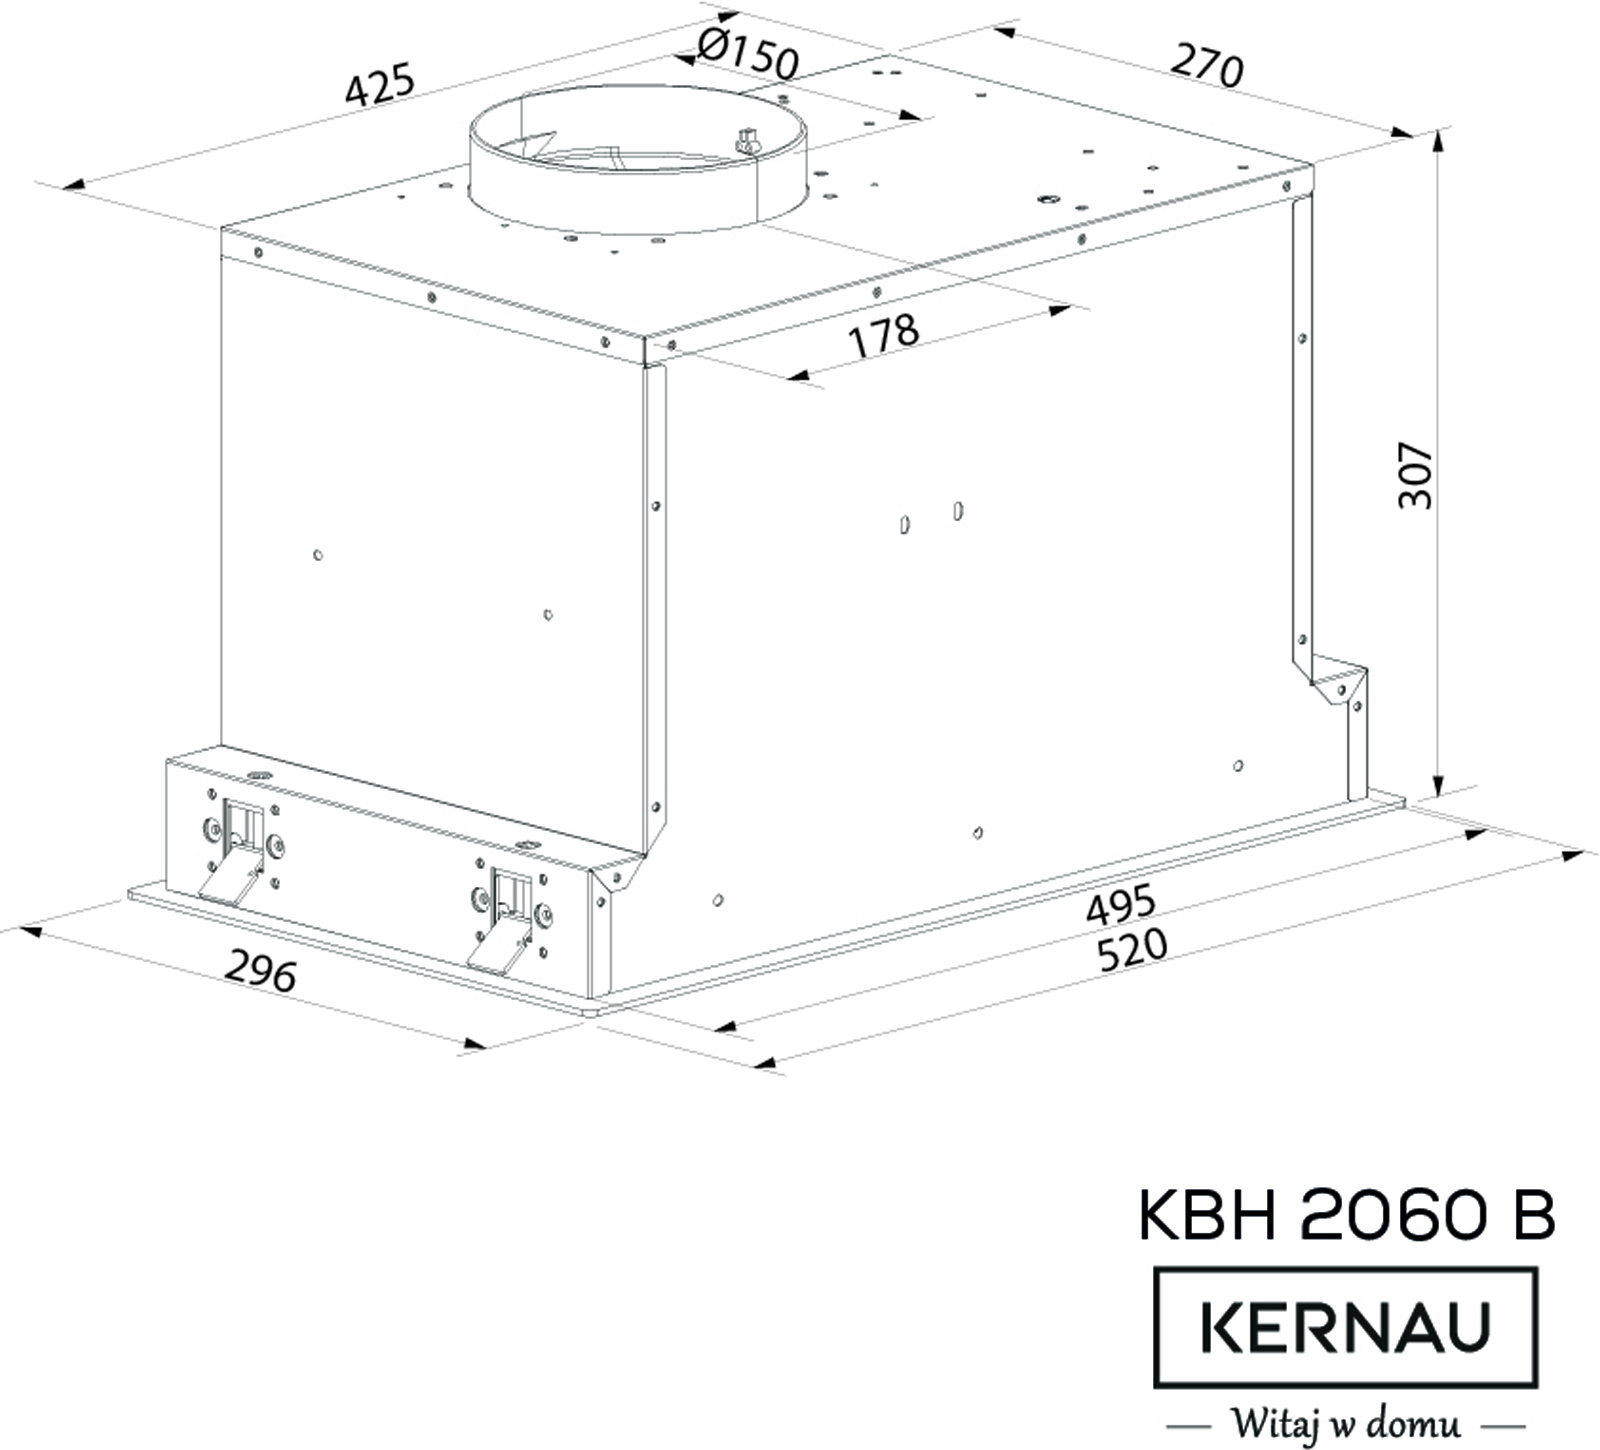 KBH 2060 B GLASS